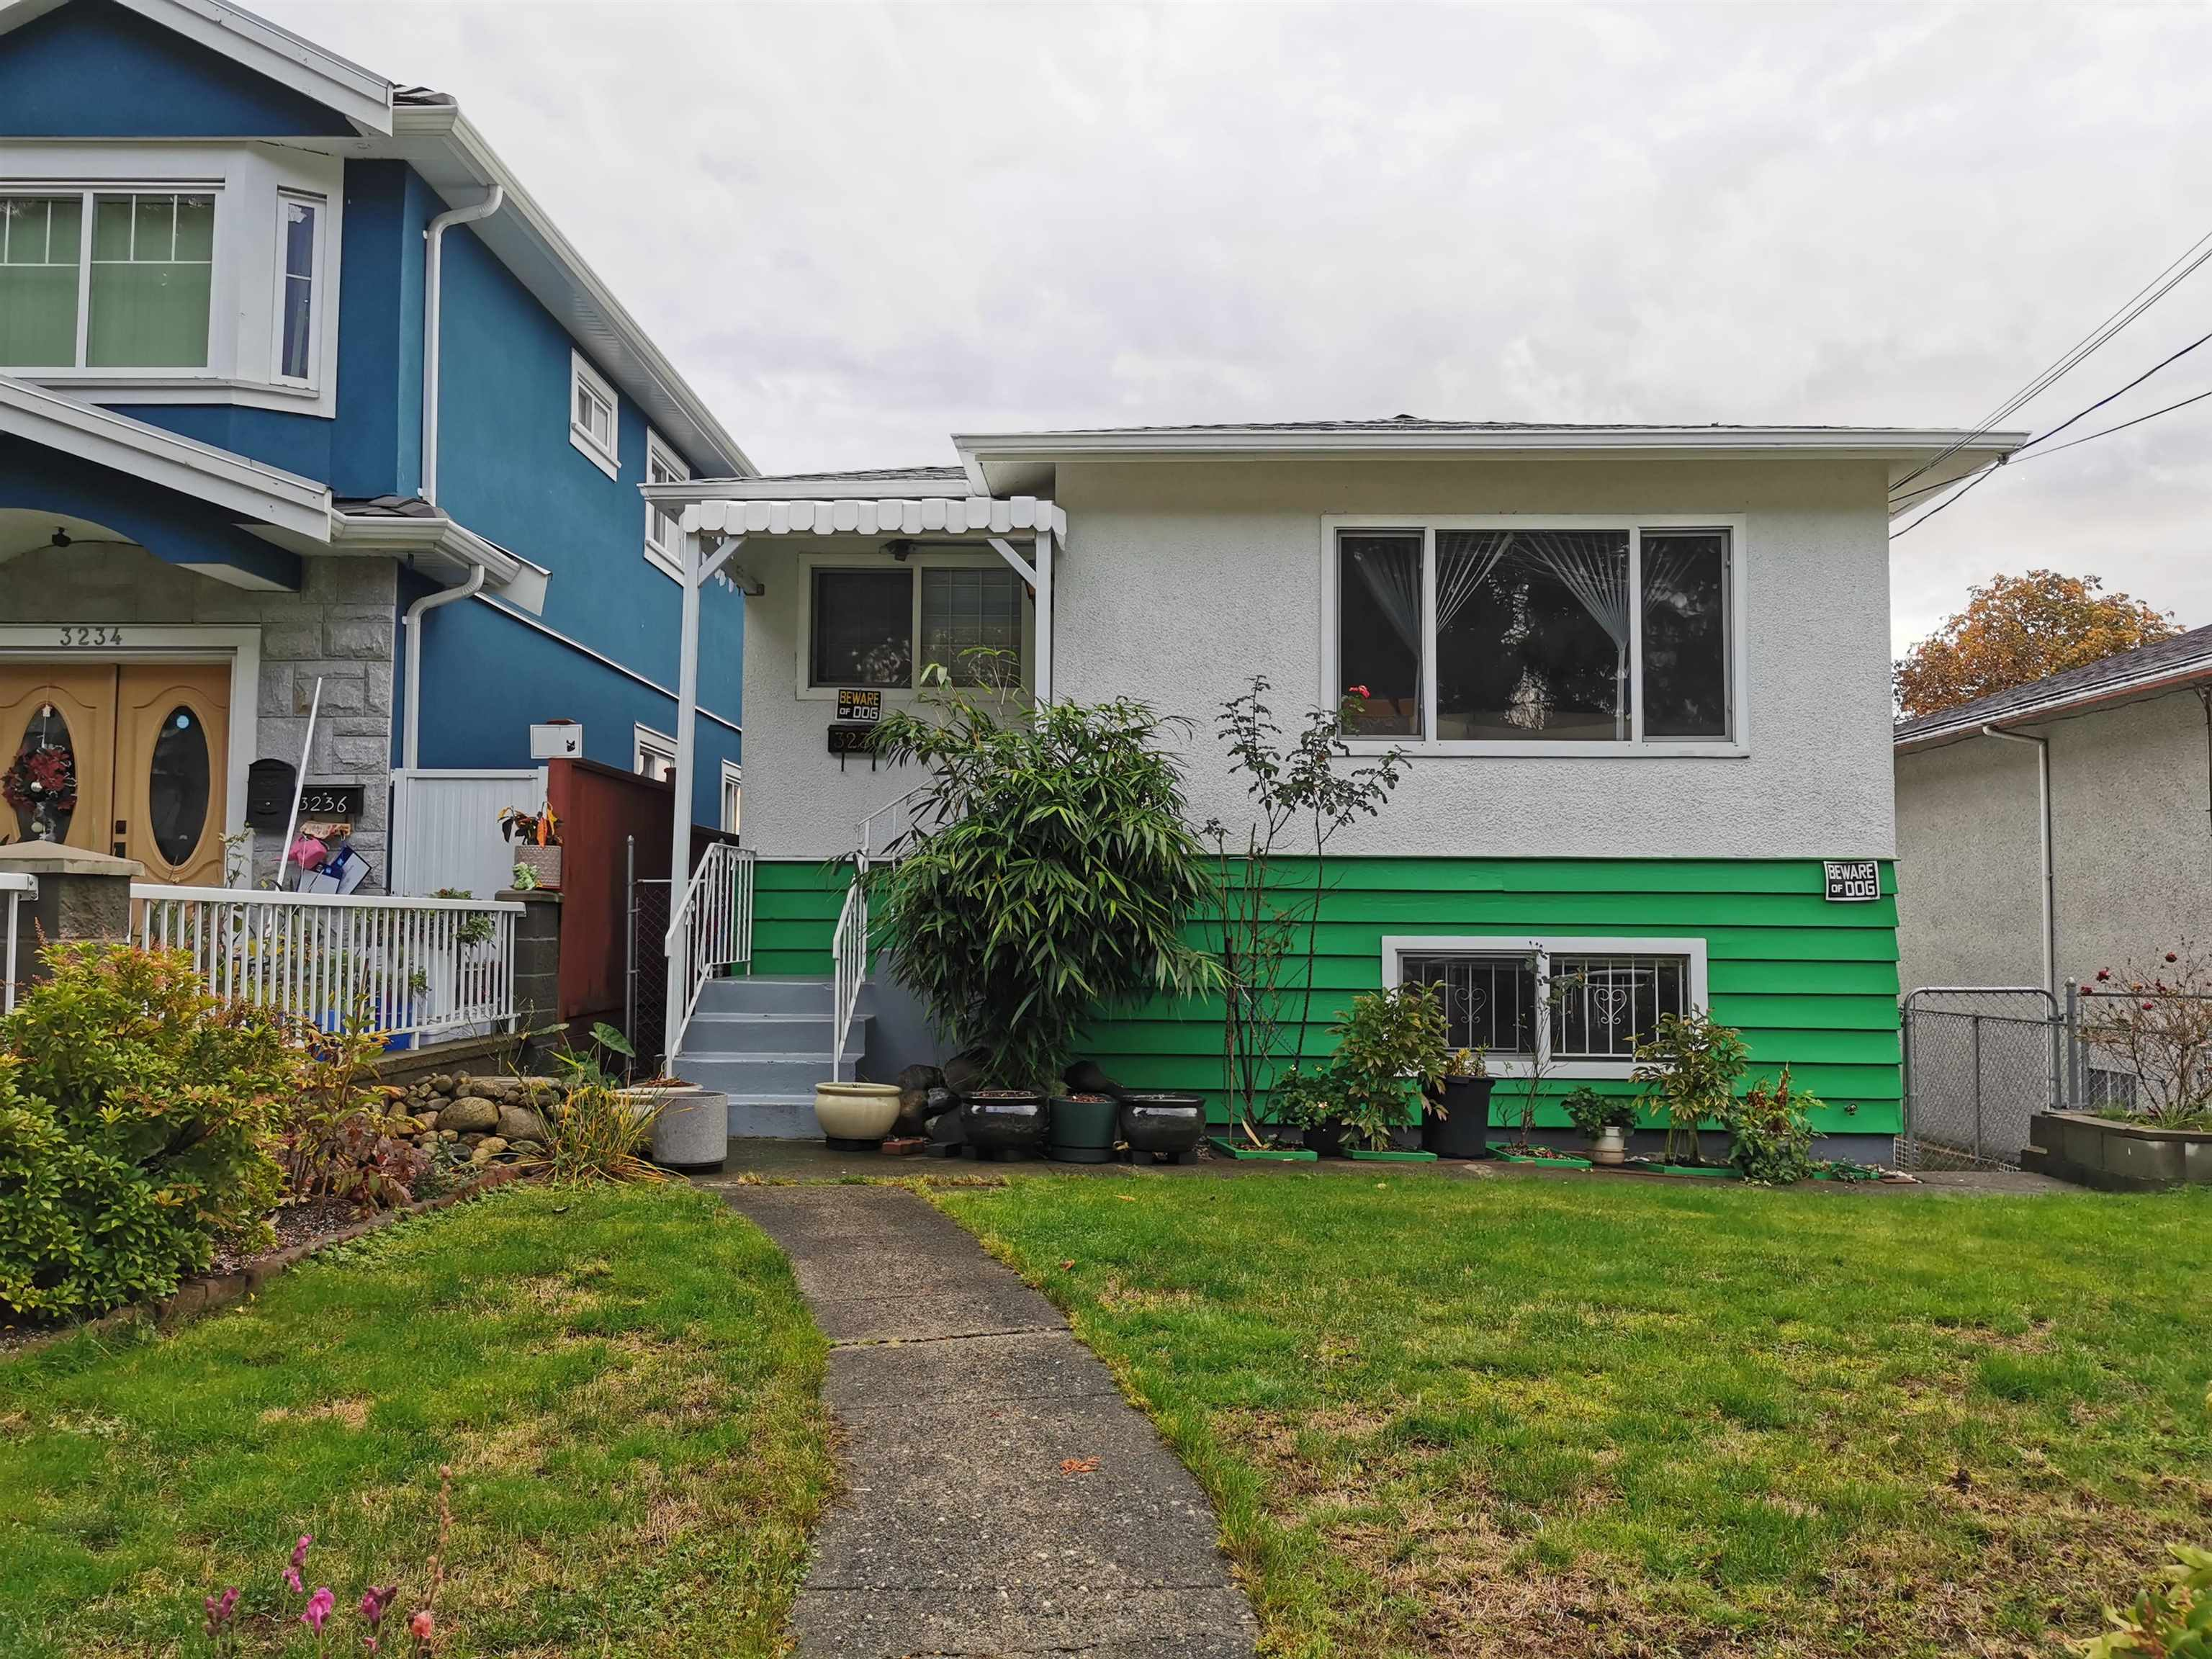 3230 VANNESS AVENUE - Collingwood VE House/Single Family for sale, 4 Bedrooms (R2627770) - #1